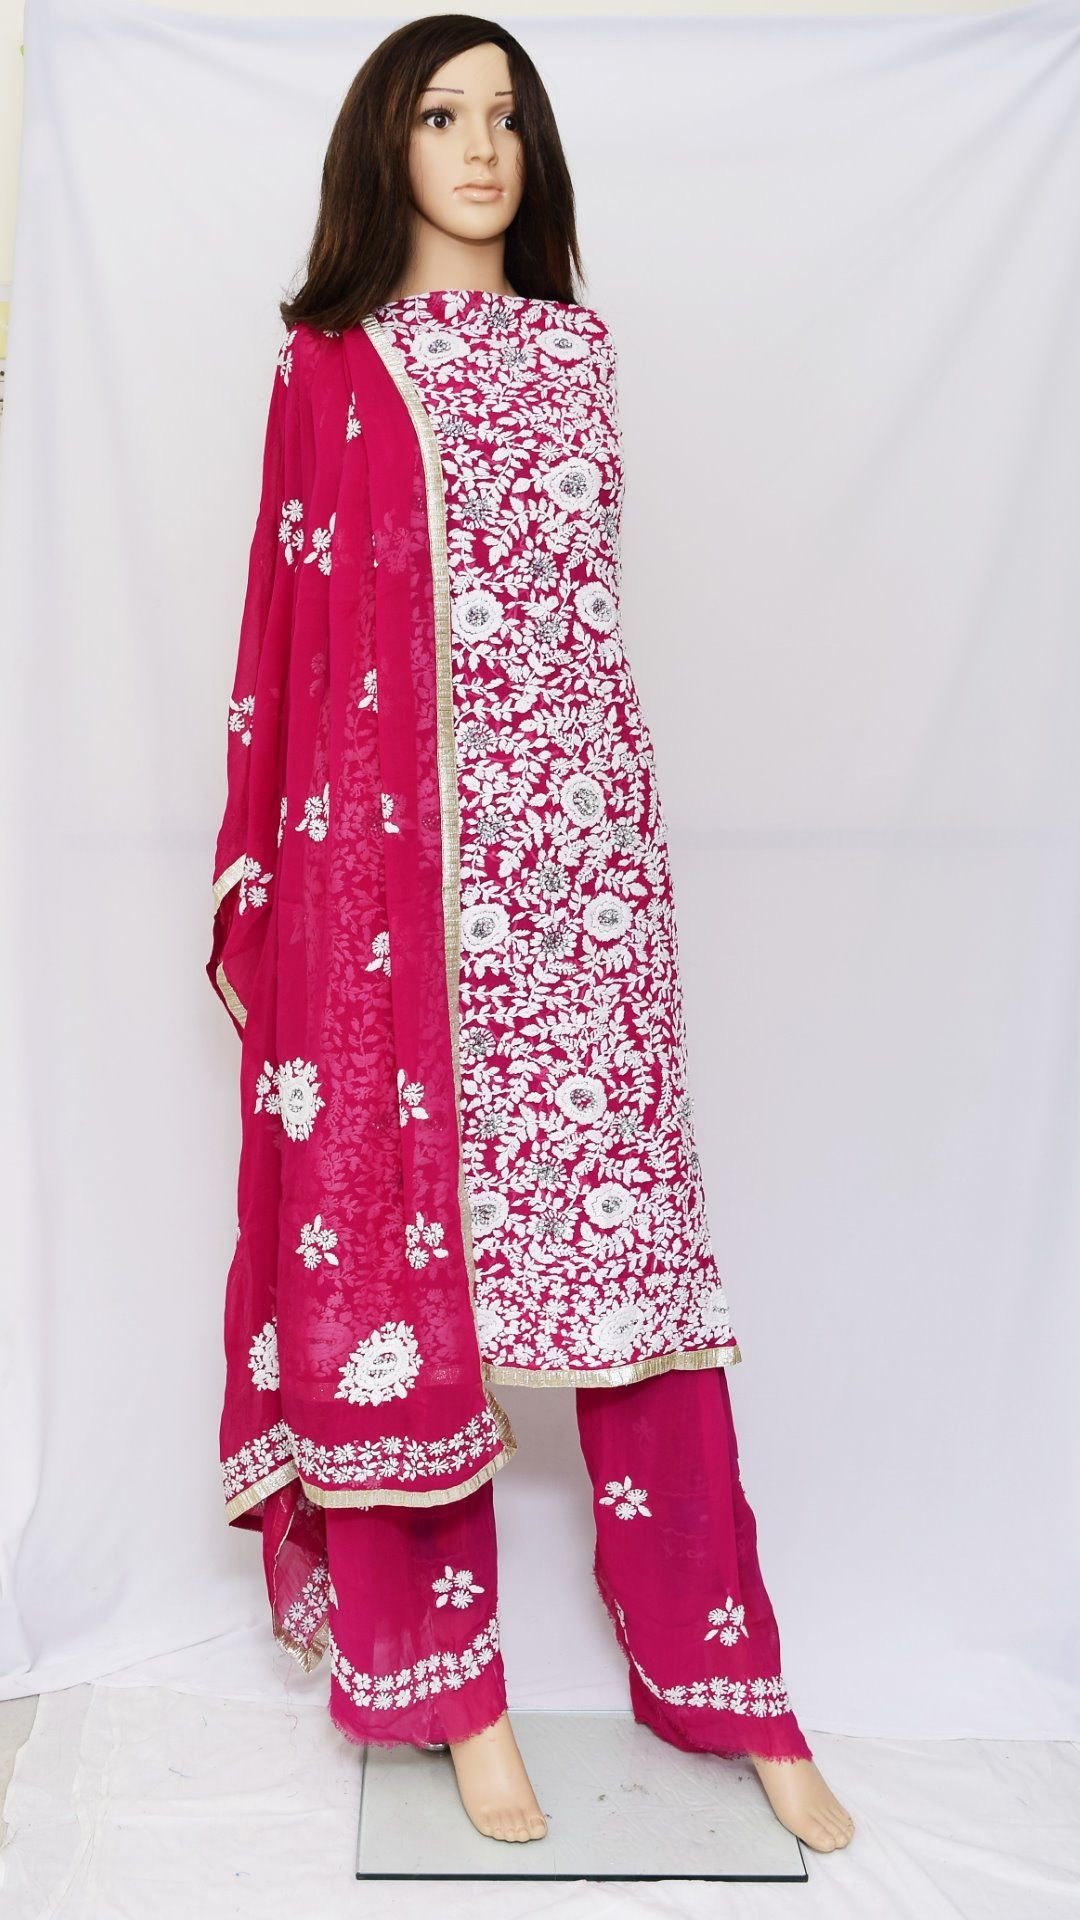 655f690523 S.K. Ethnic India Pink Magenta Heavy Hand Embroidered Georgette Full Salwar  Kameez Suit with Chiffon Dupatta